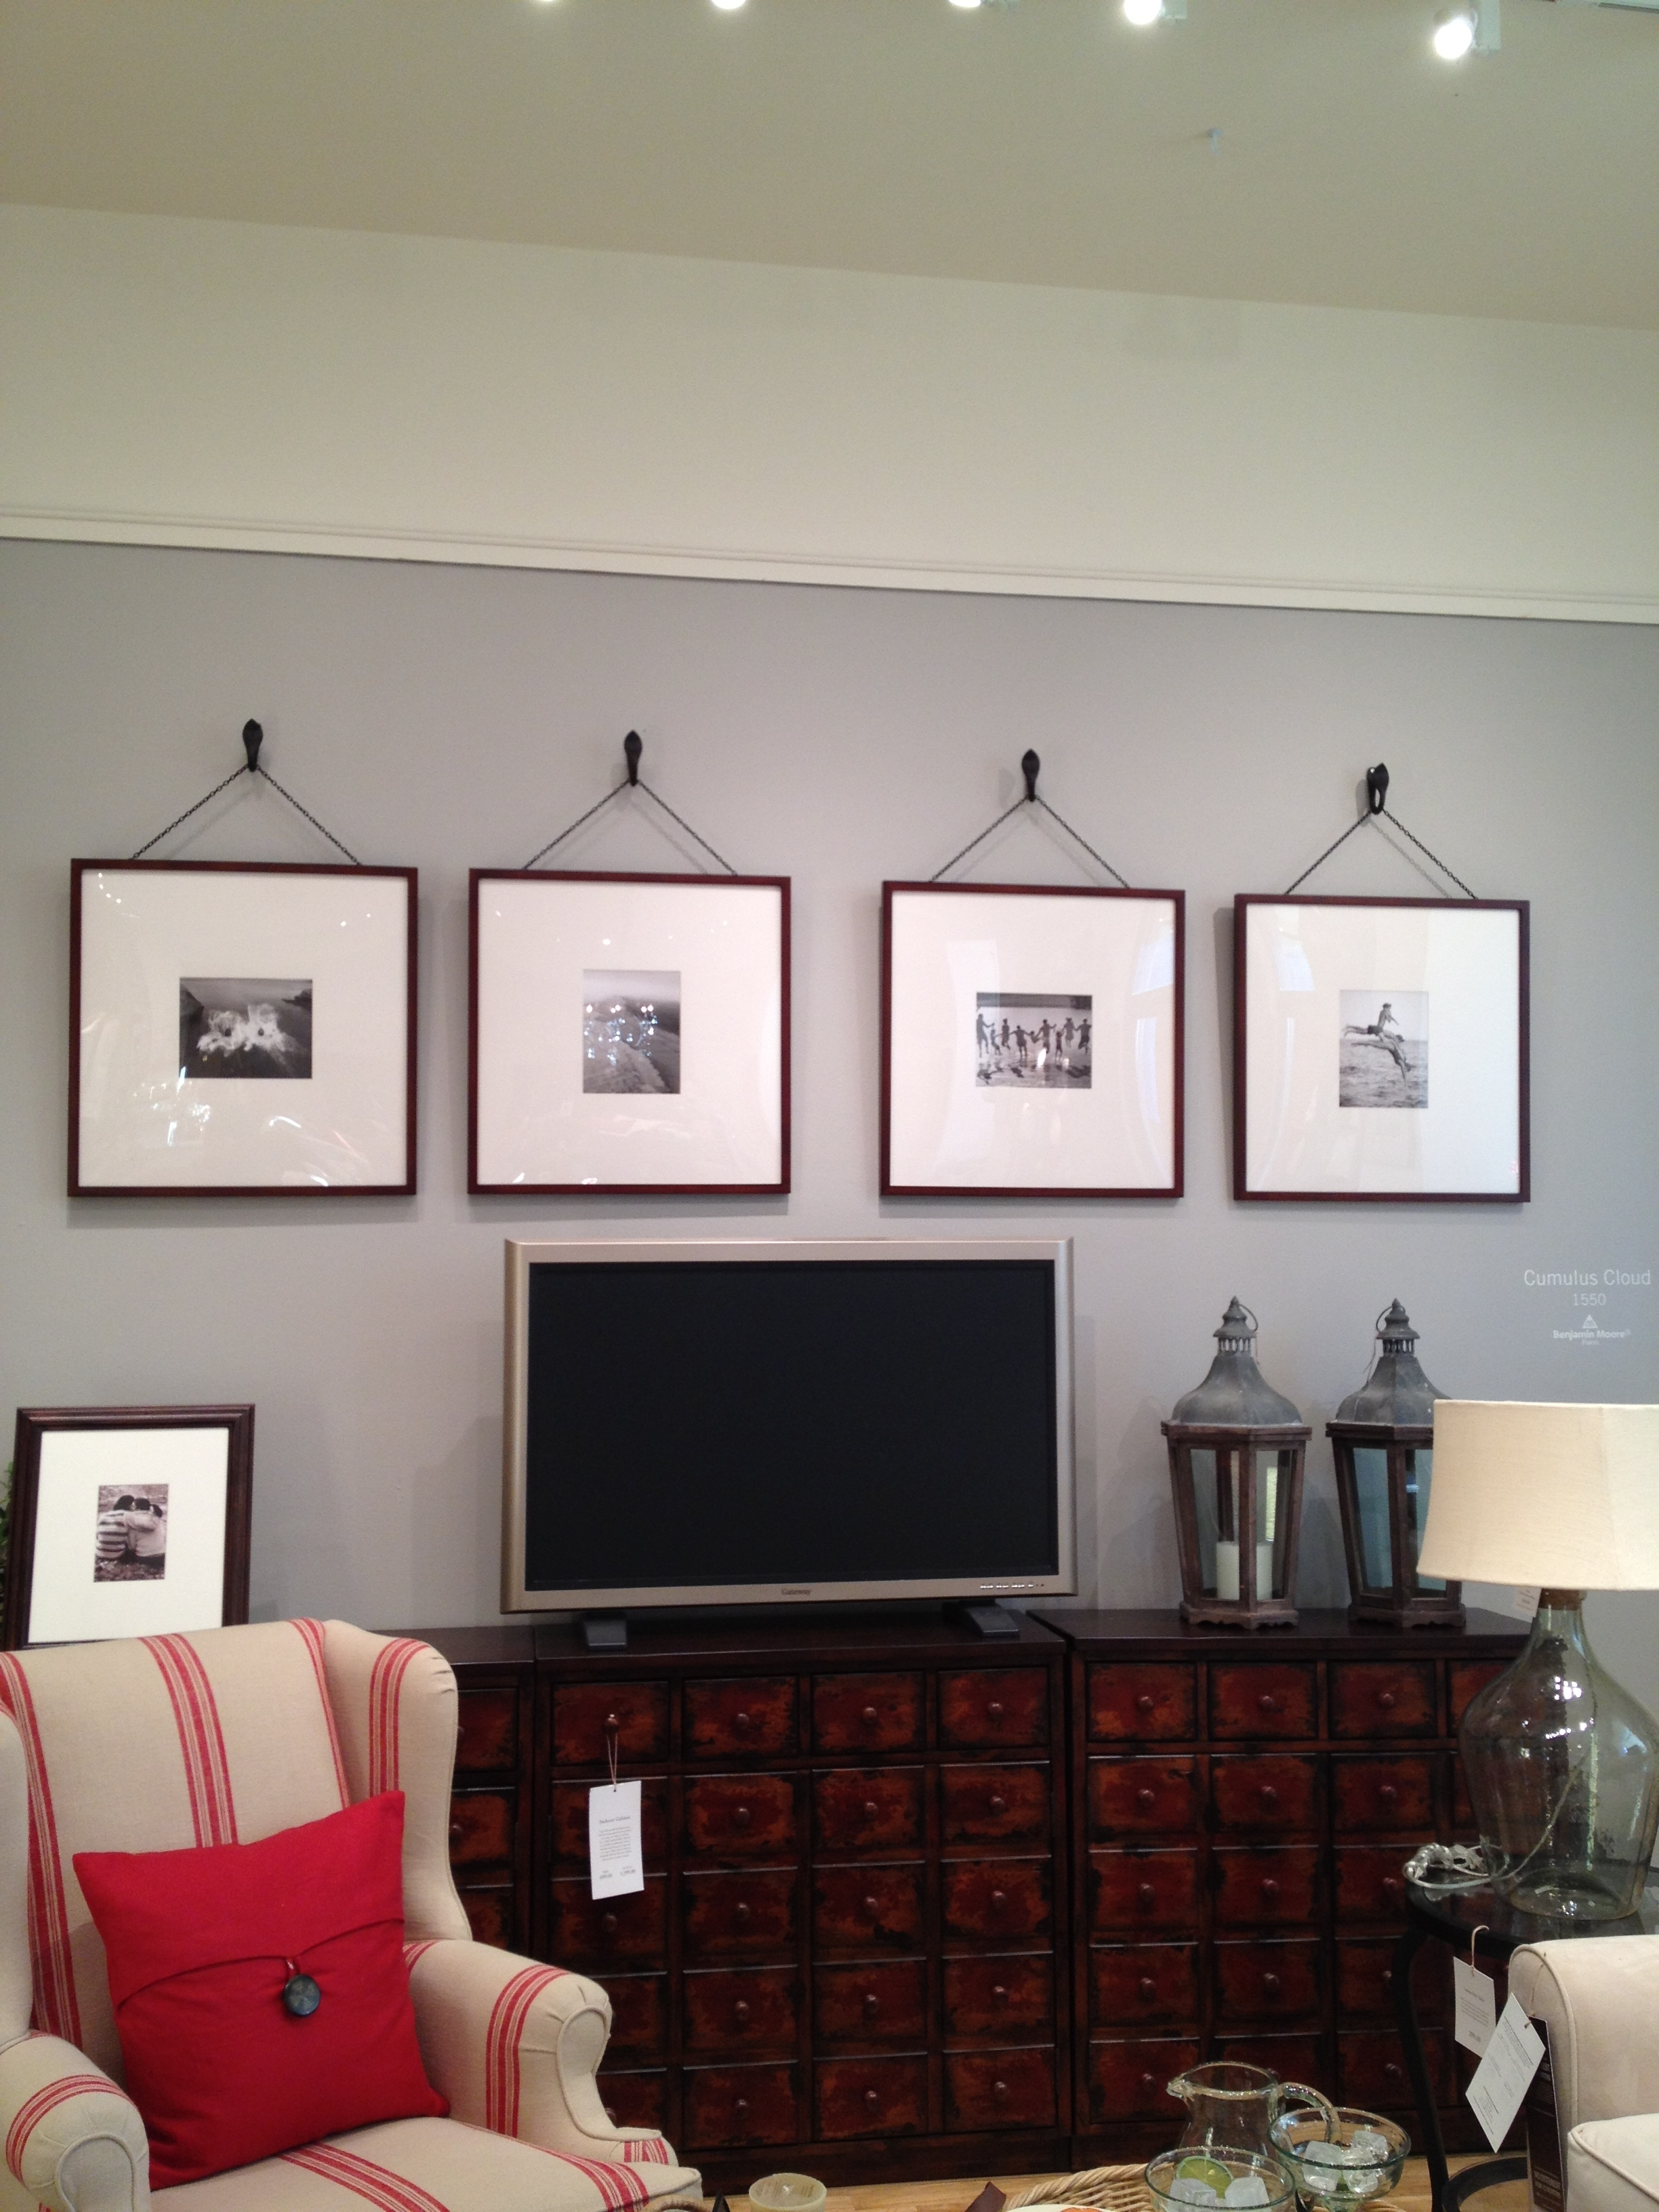 Pottery Barn Oversized Picture Frames Maybe Over The Tv In The For Best And Newest Wall Accents Behind Tv Or Couch (View 12 of 15)